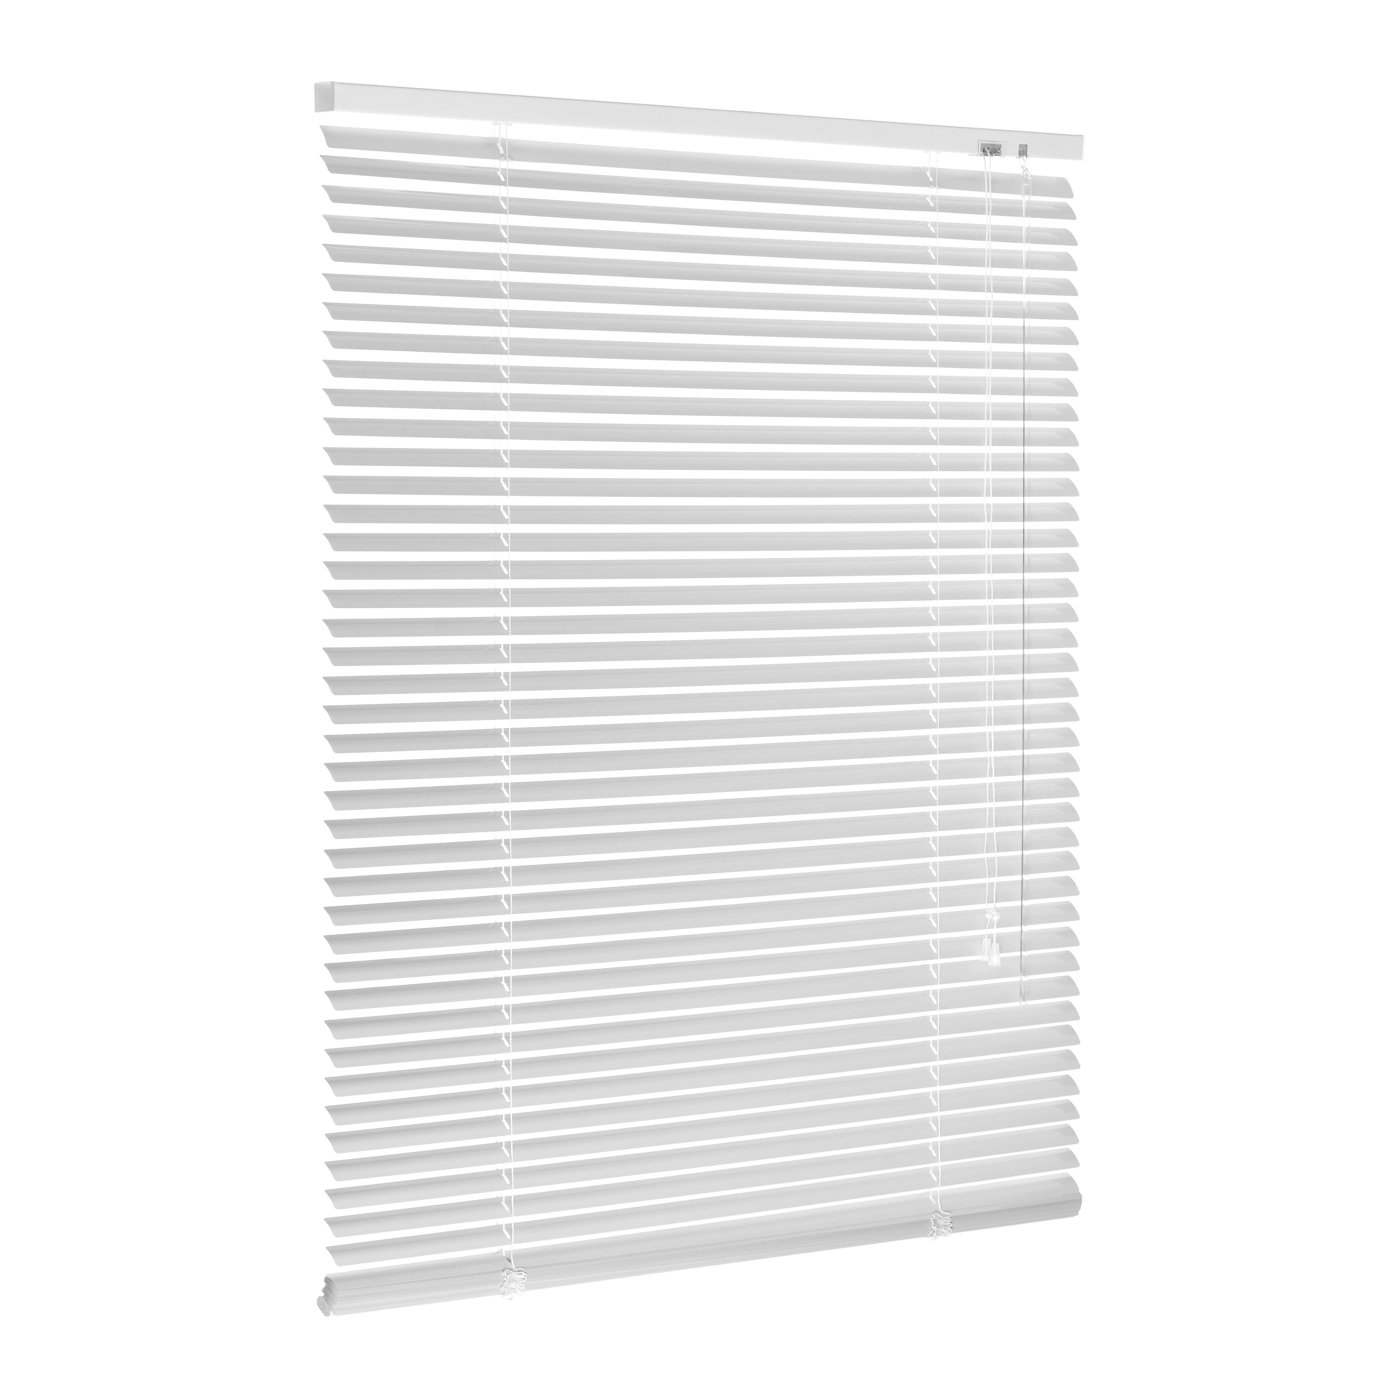 Aluminum Venetian Blind White 25mm mounting accessories included numerous sizes (40x130 cm (Width X Height)) Ventanara